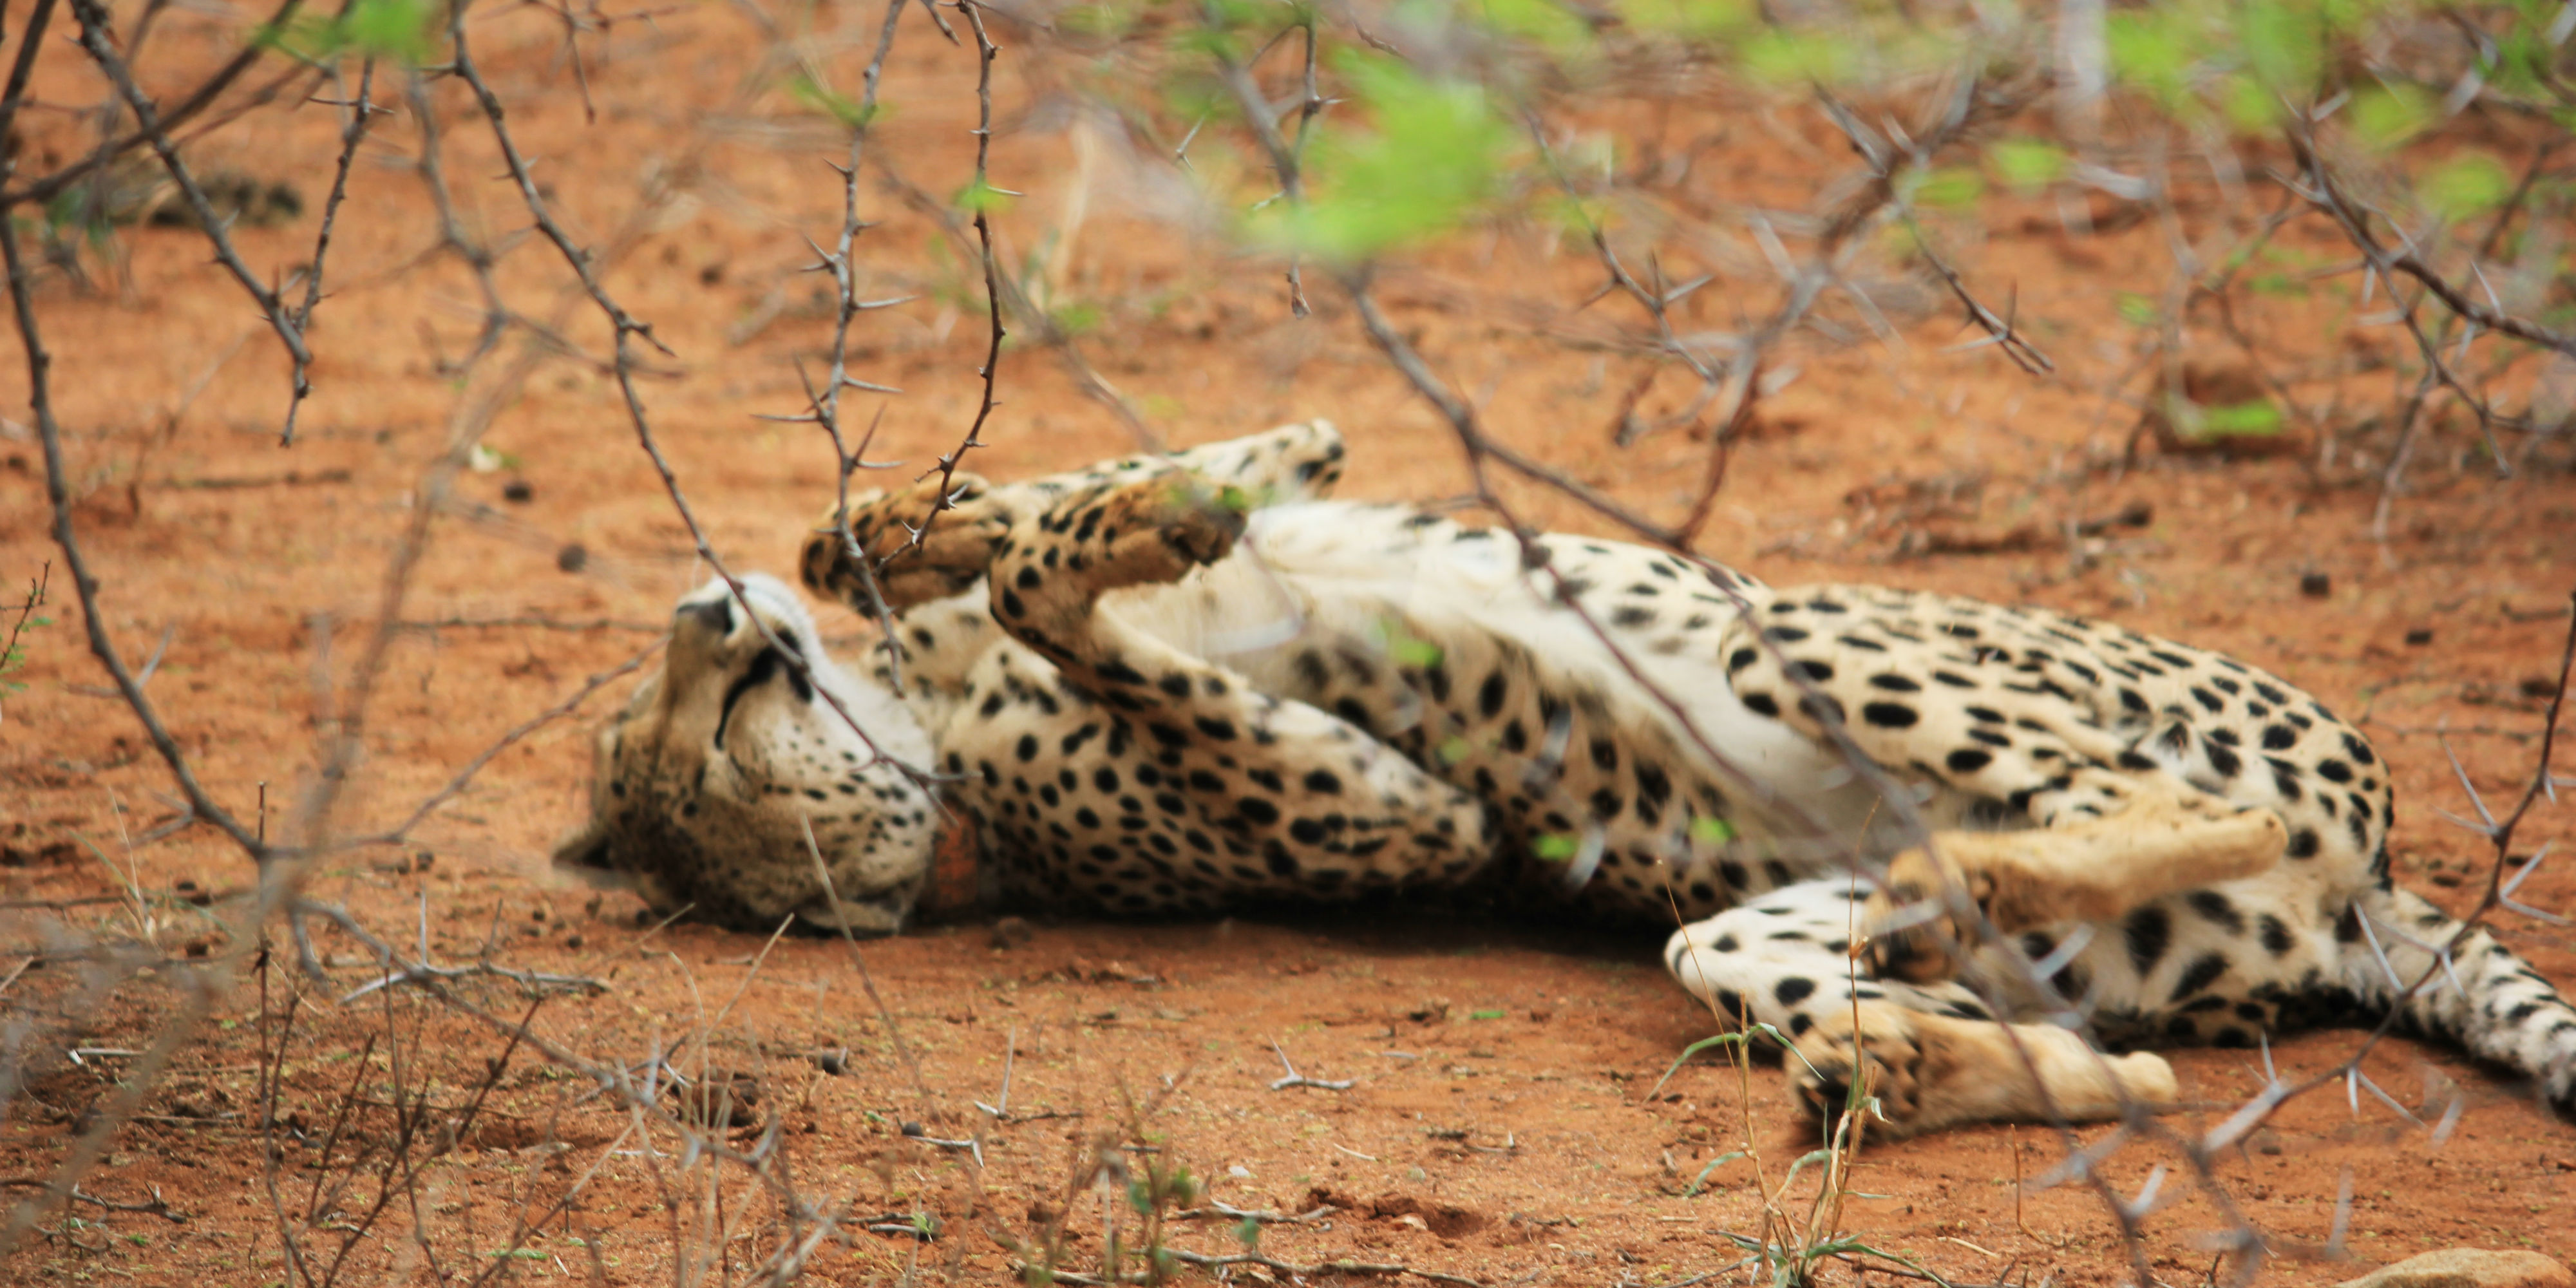 A South African cheetah female rubs her back in the soil.